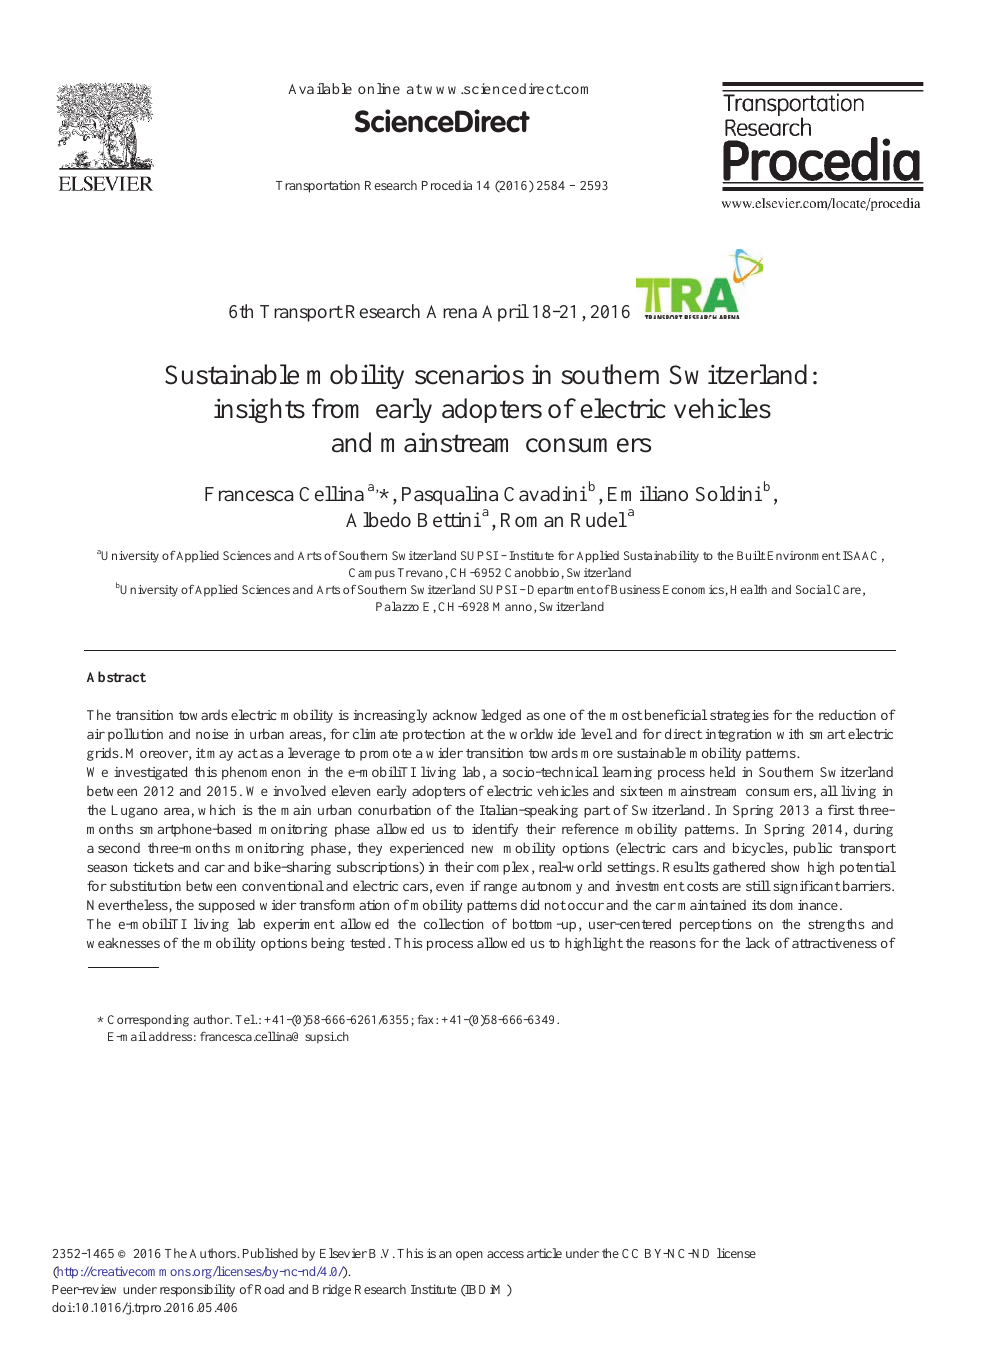 Sustainable Mobility Scenarios In Southern Switzerland Insights From Early Adopters Of Electric Vehicles And Mainstream Consumers Topic Of Research Paper In Social And Economic Geography Download Scholarly Article Pdf And Read